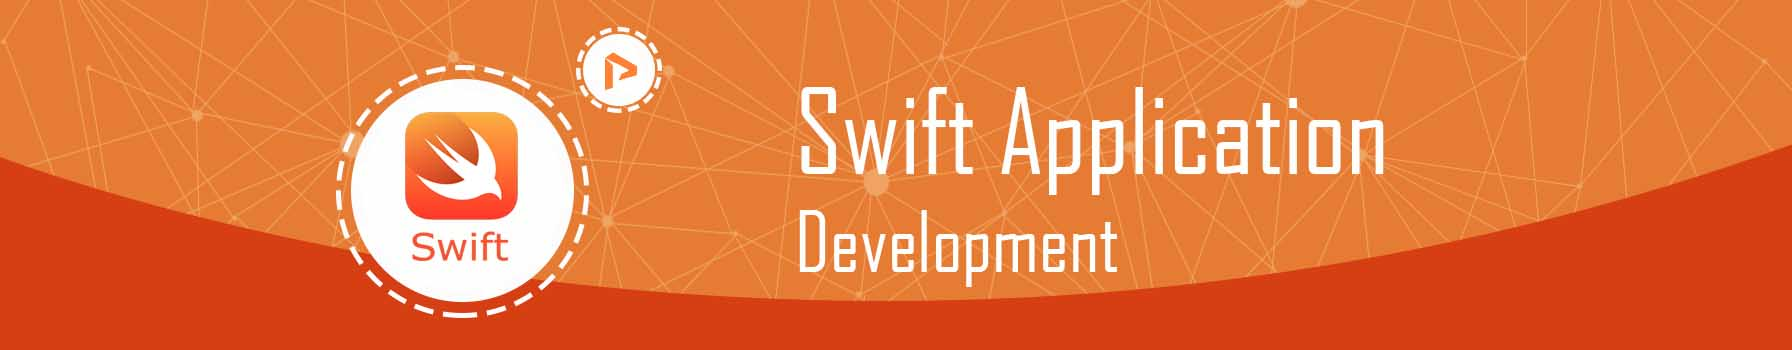 swift-application-development.jpg